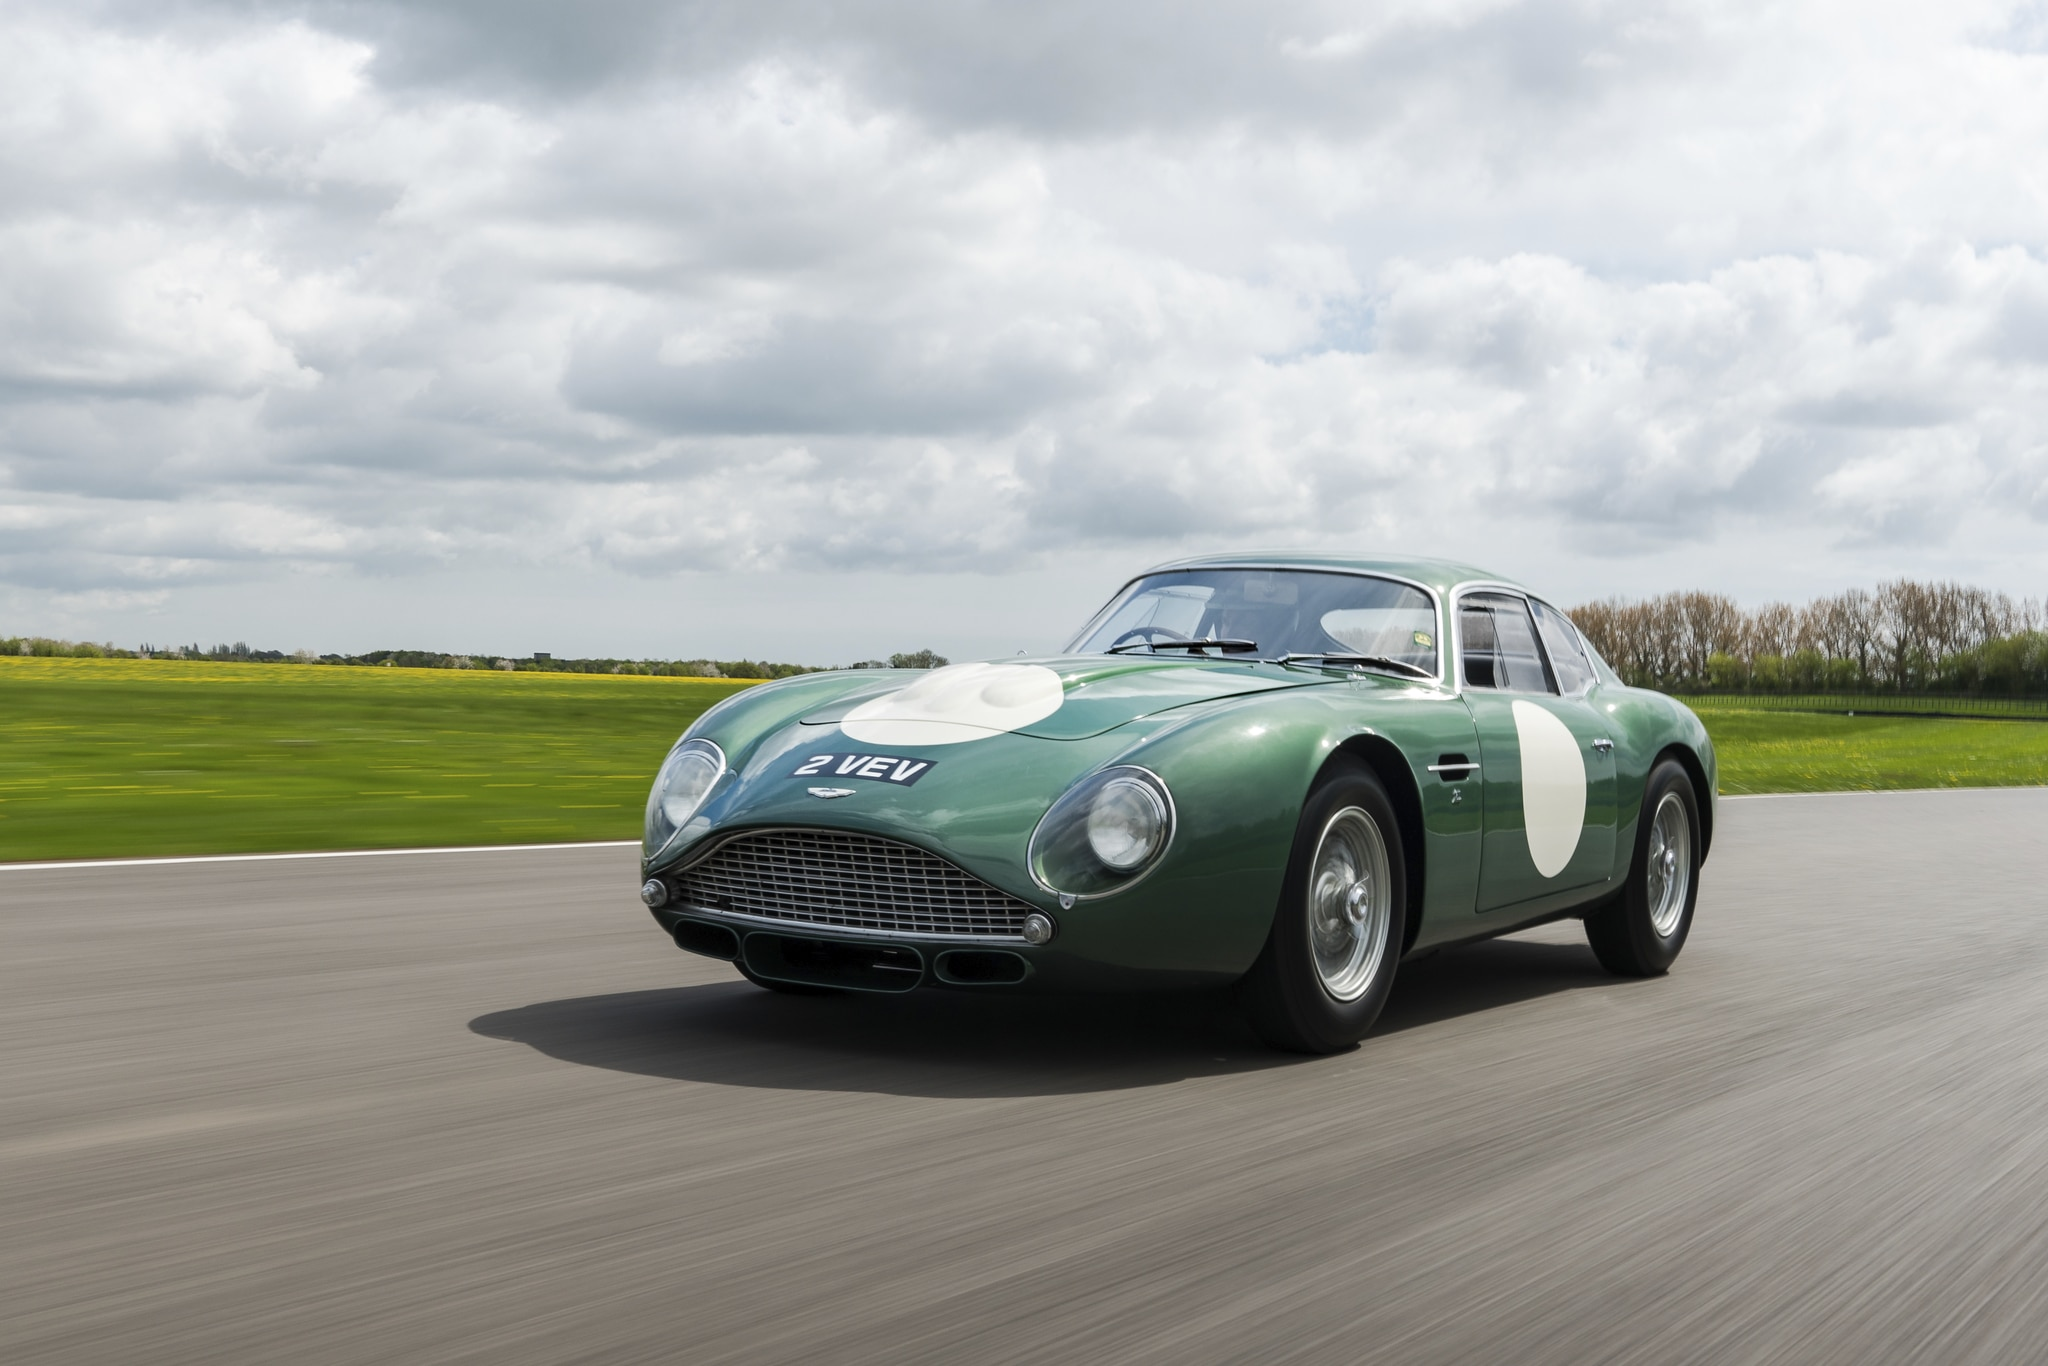 1961 Aston Martin Mp209 Db4gt Zagato Brings 13 302 239 In Record Breaking Bonhams Auction